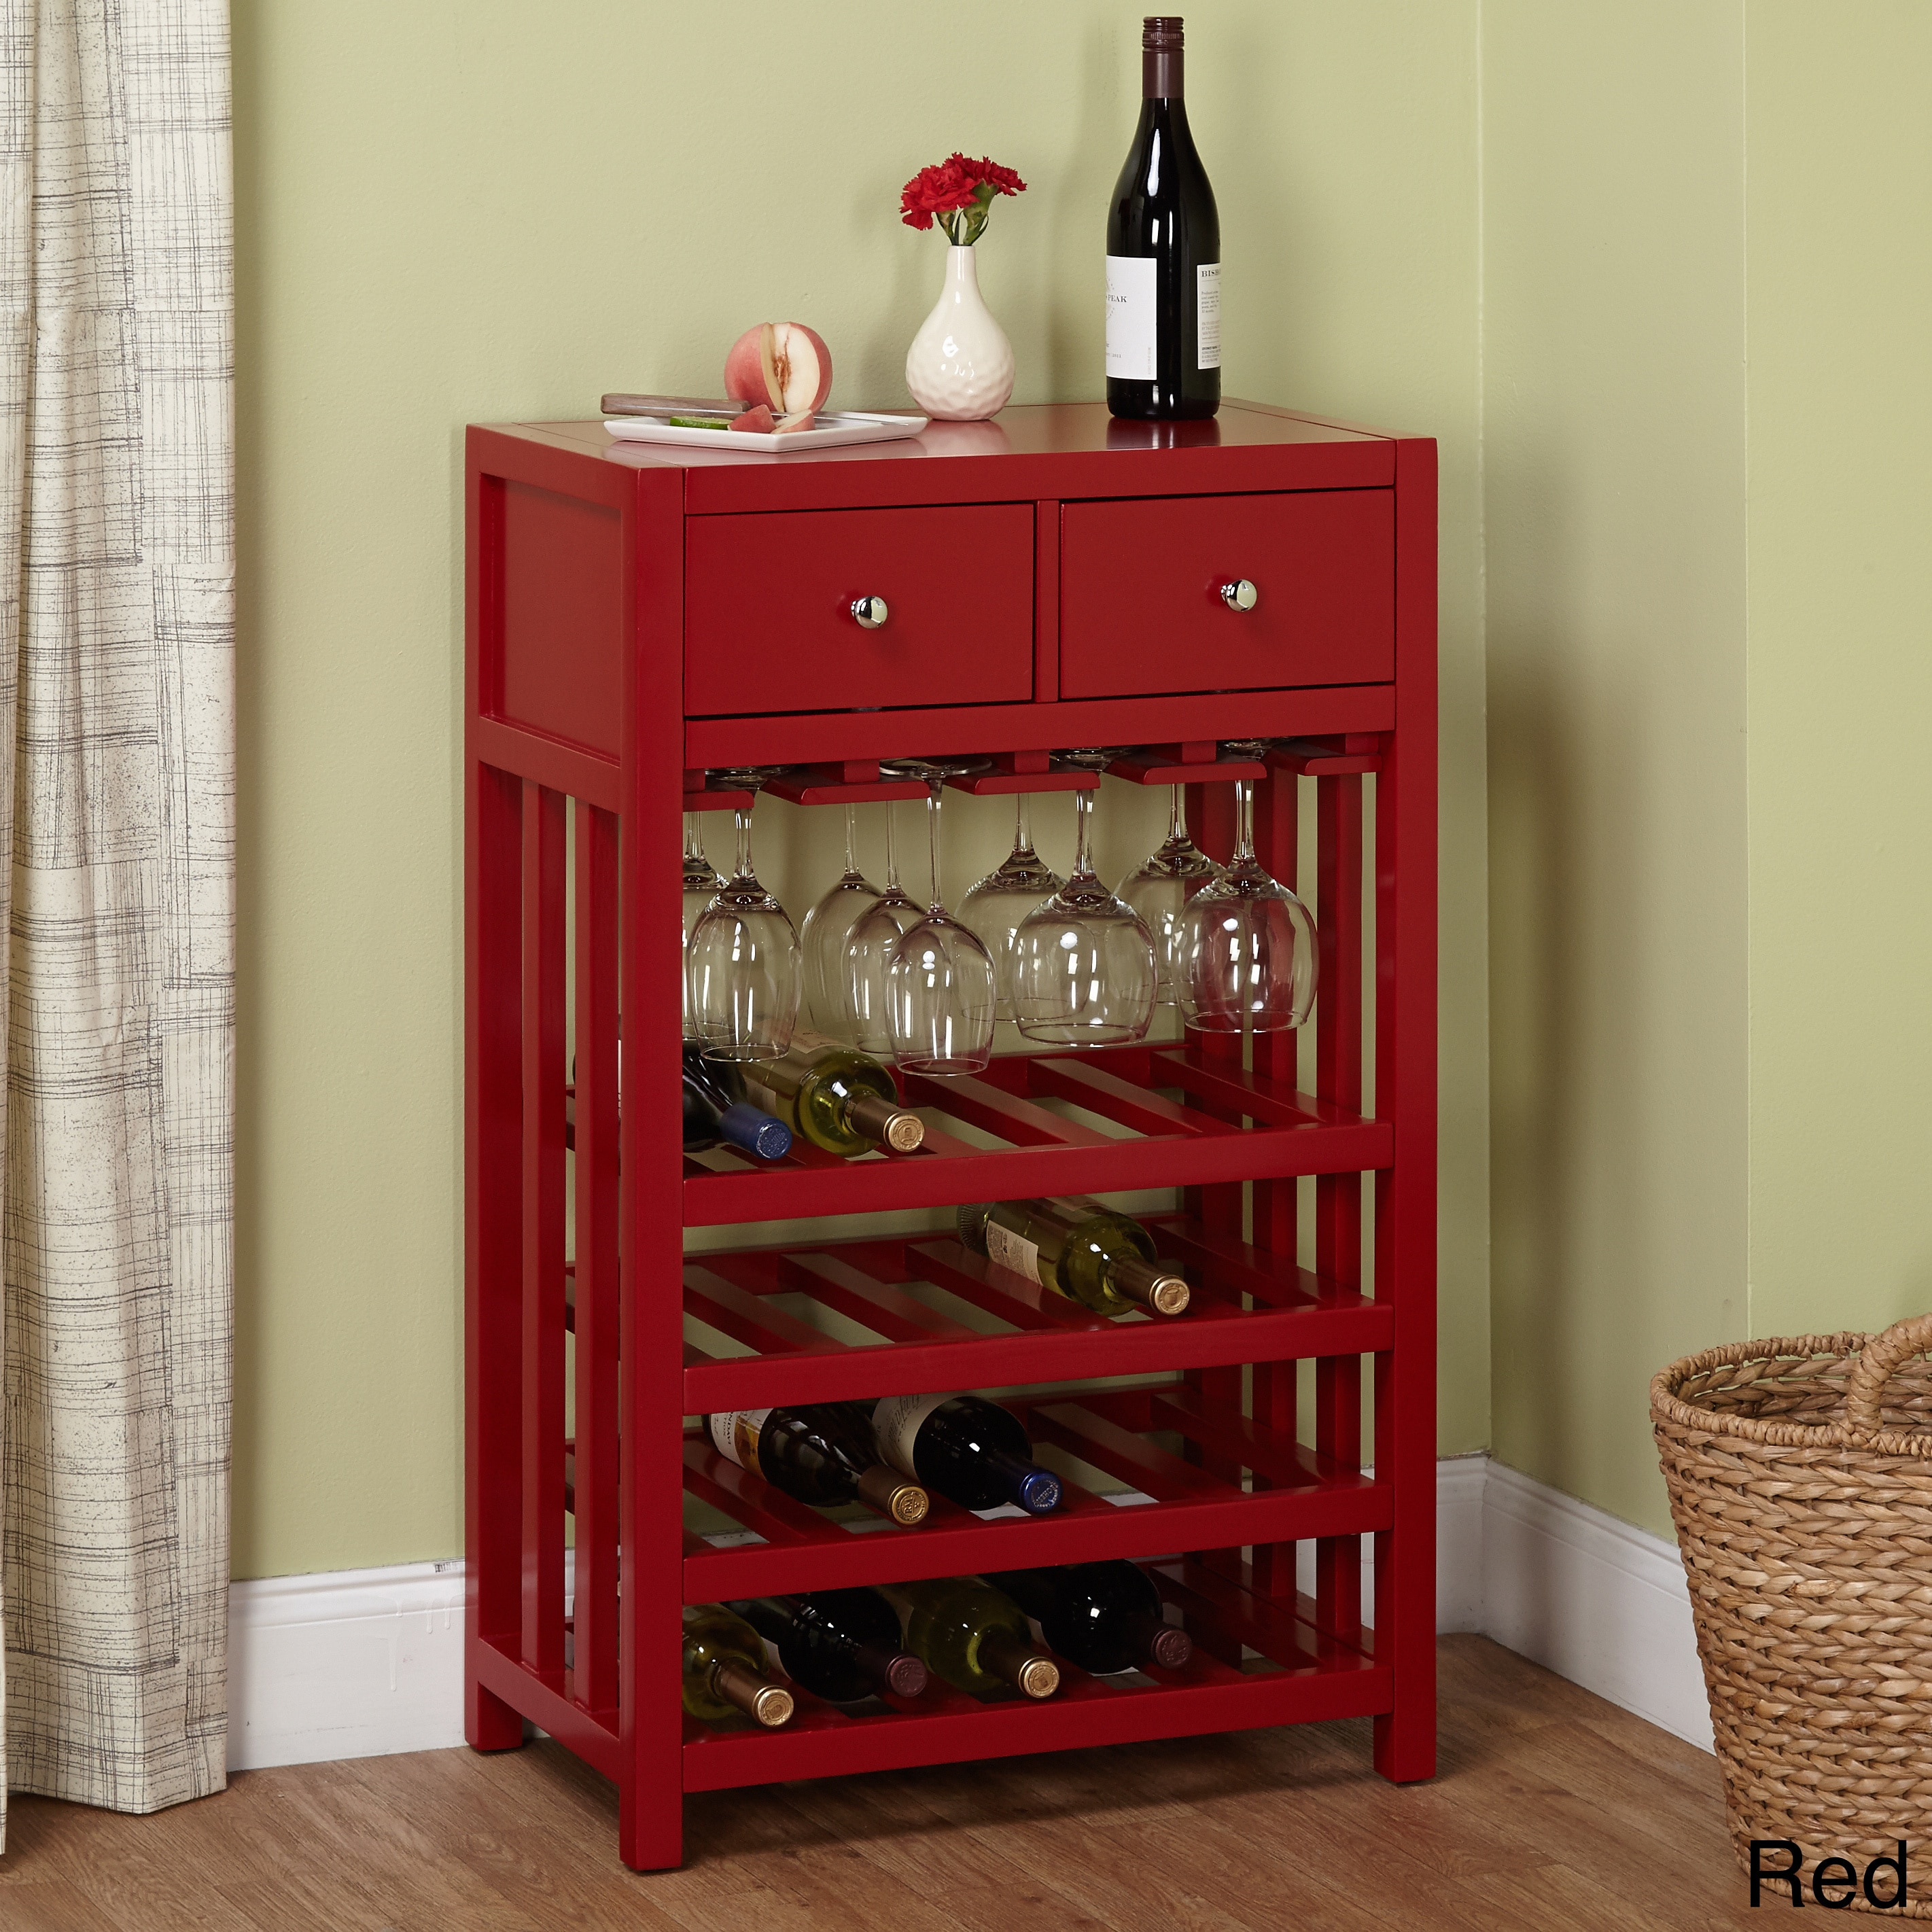 Simple Living Napa Wood 20-bottle Wine Tower (Red)